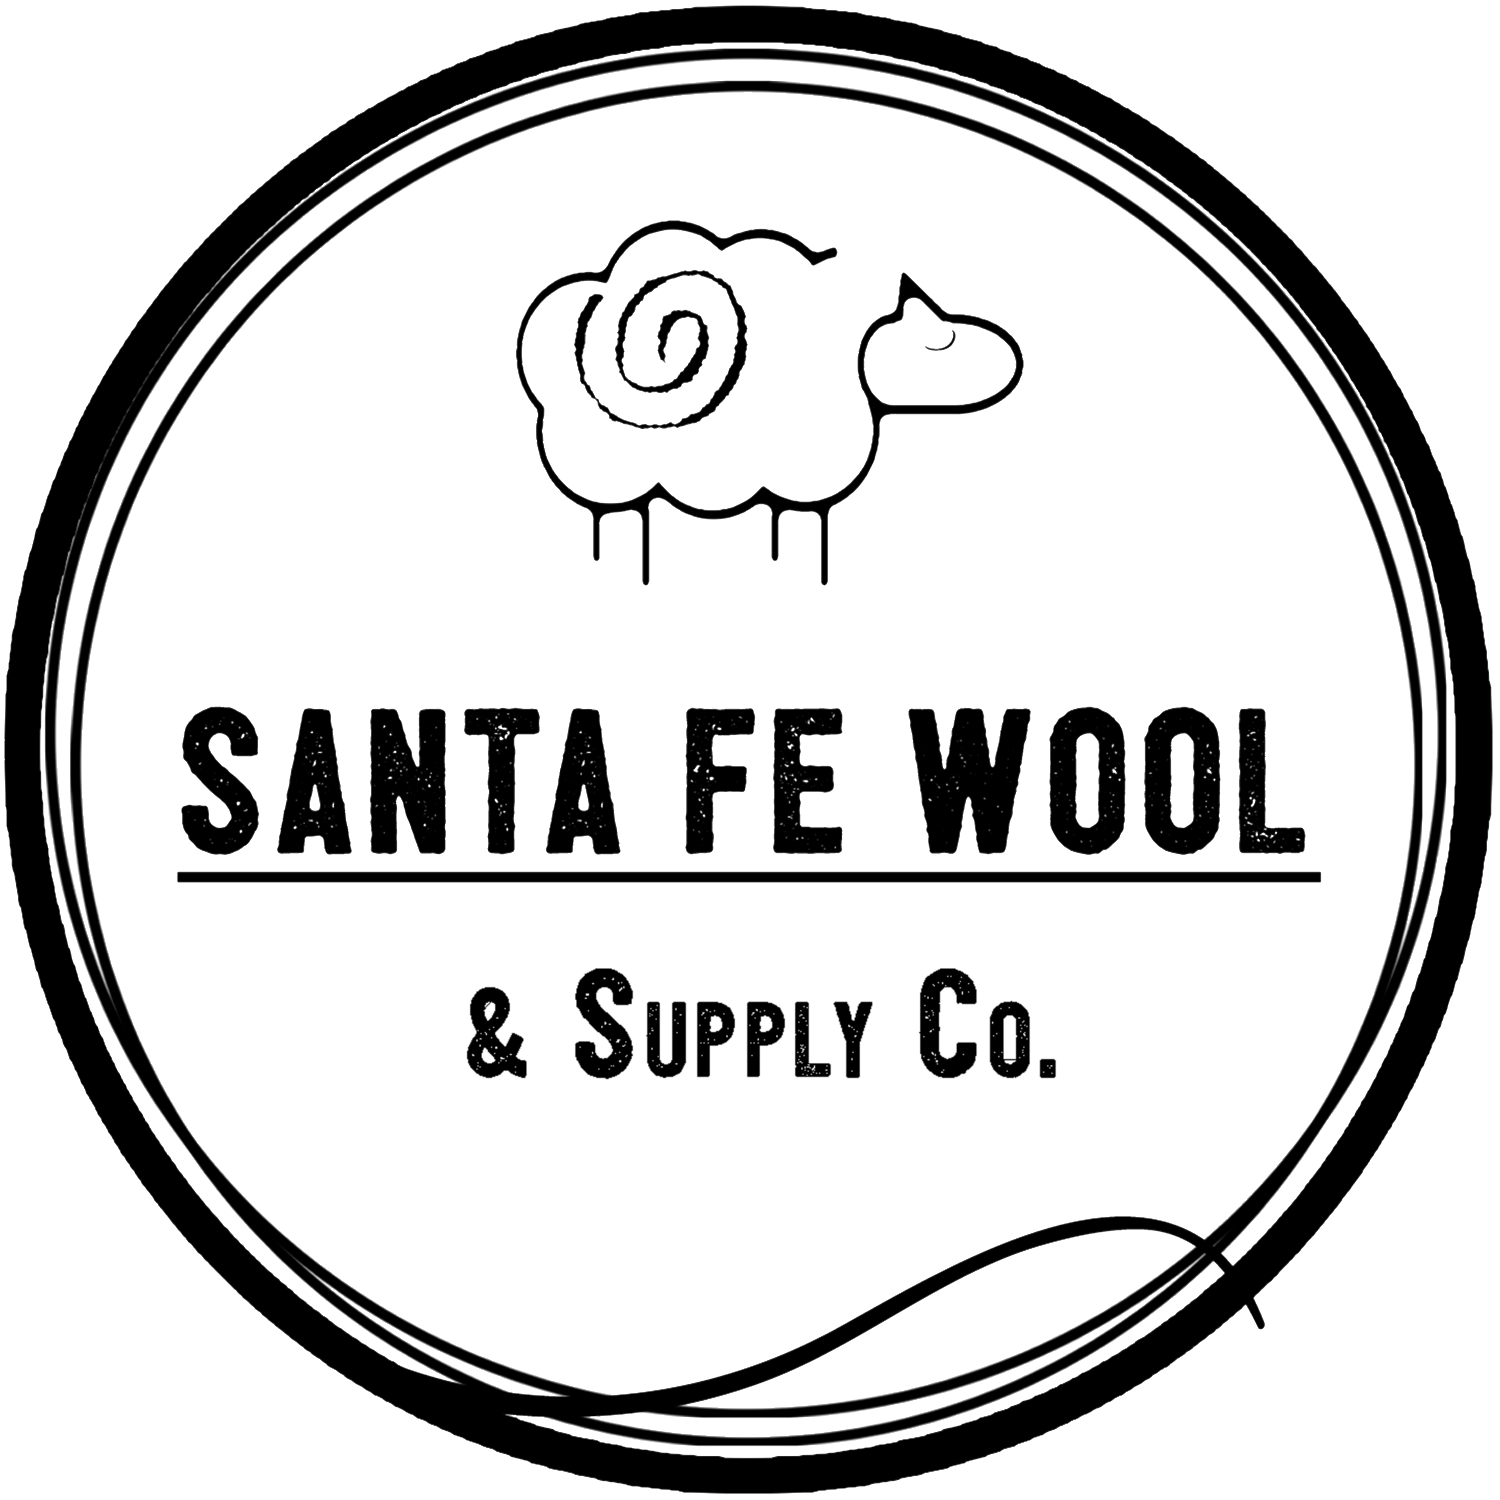 Santa Fe Wool & Supply Co